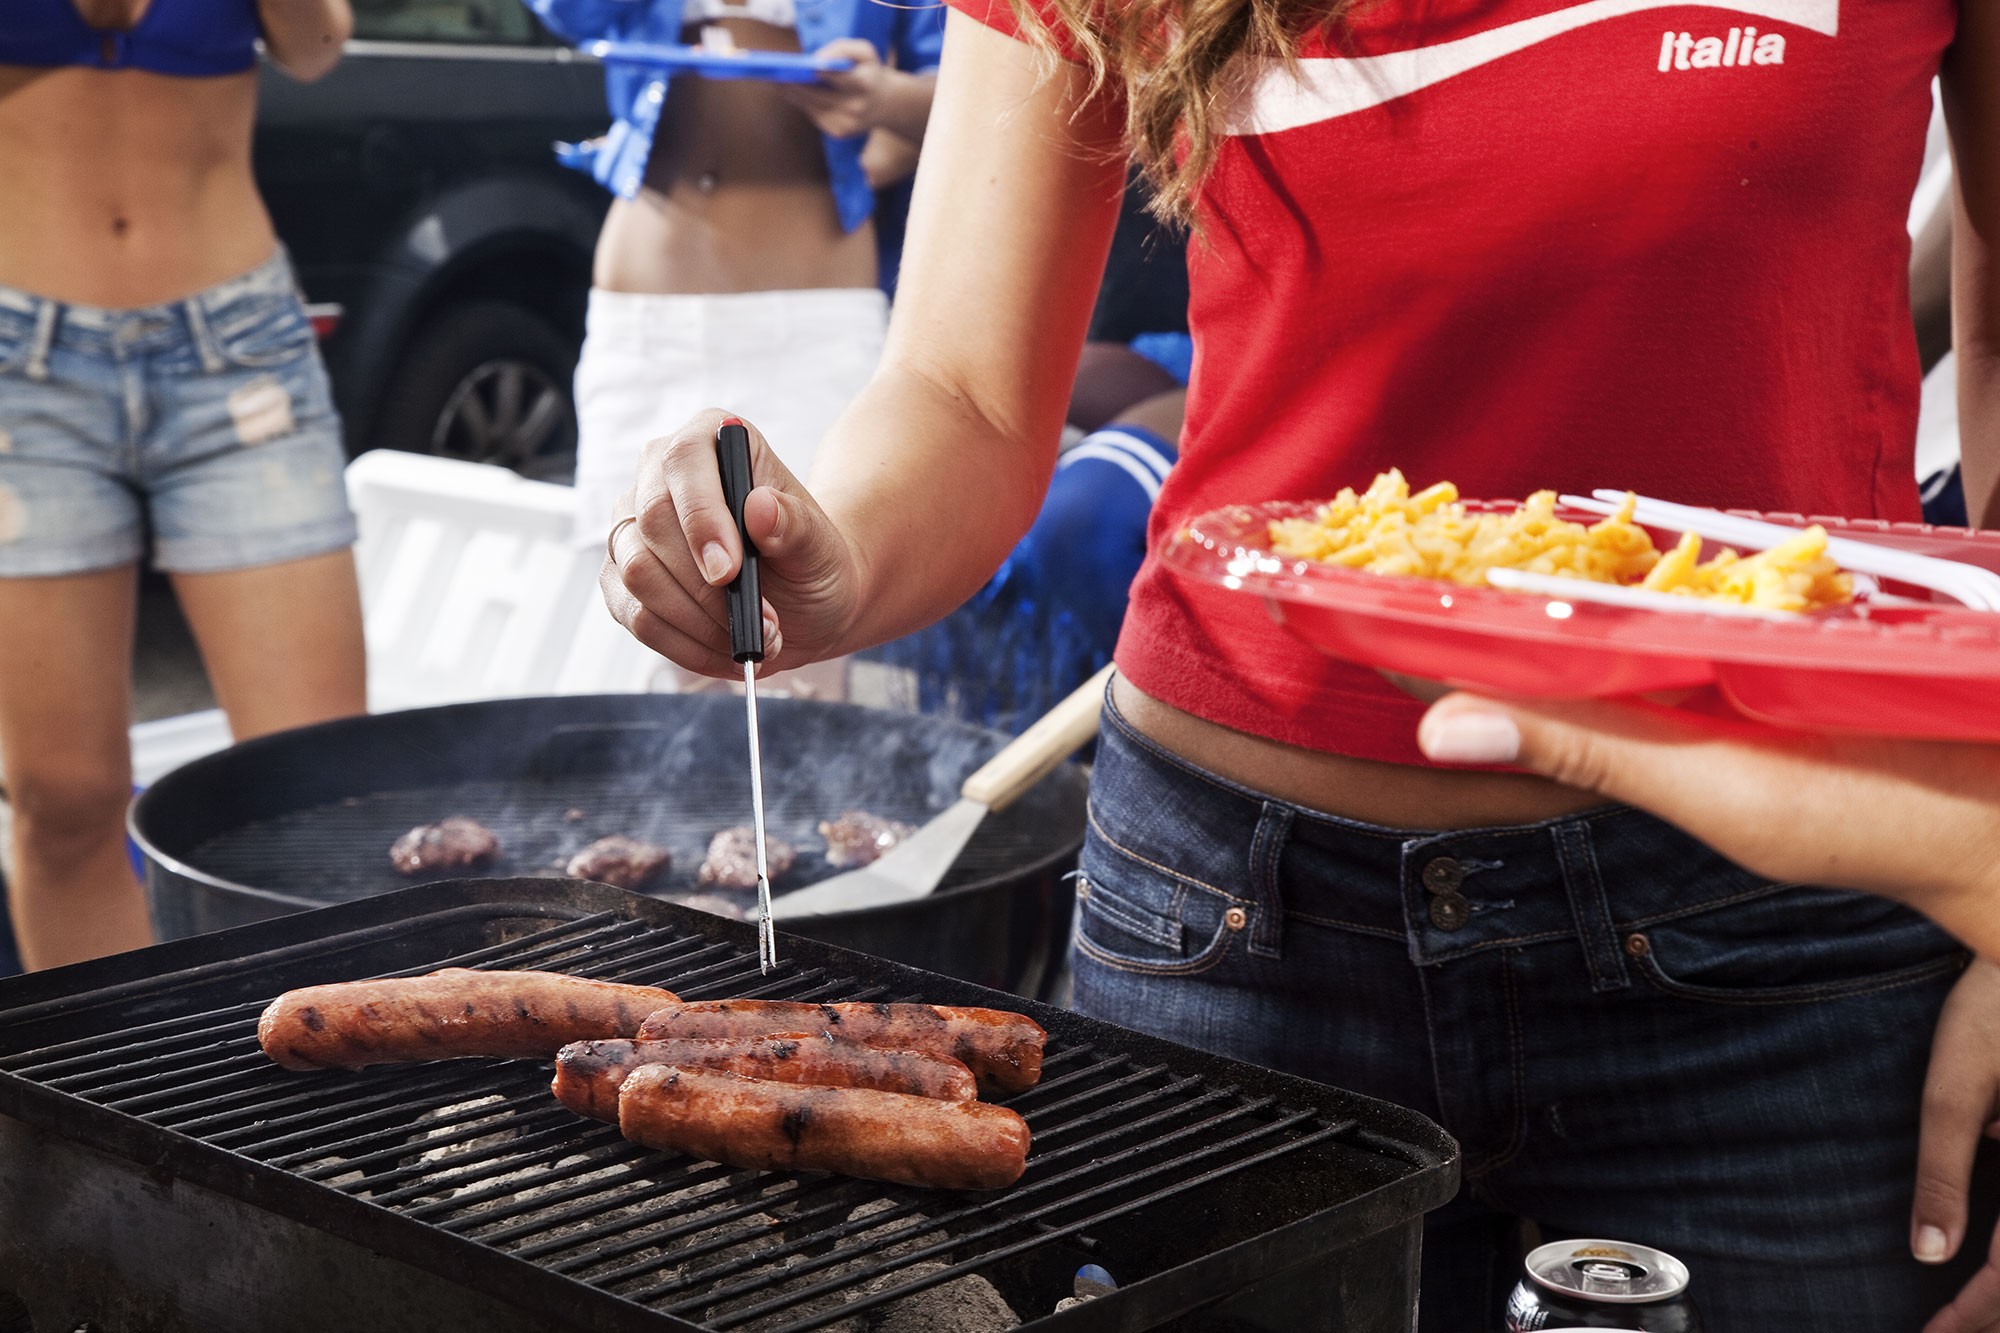 010-LIFE_tailgate243a.jpg